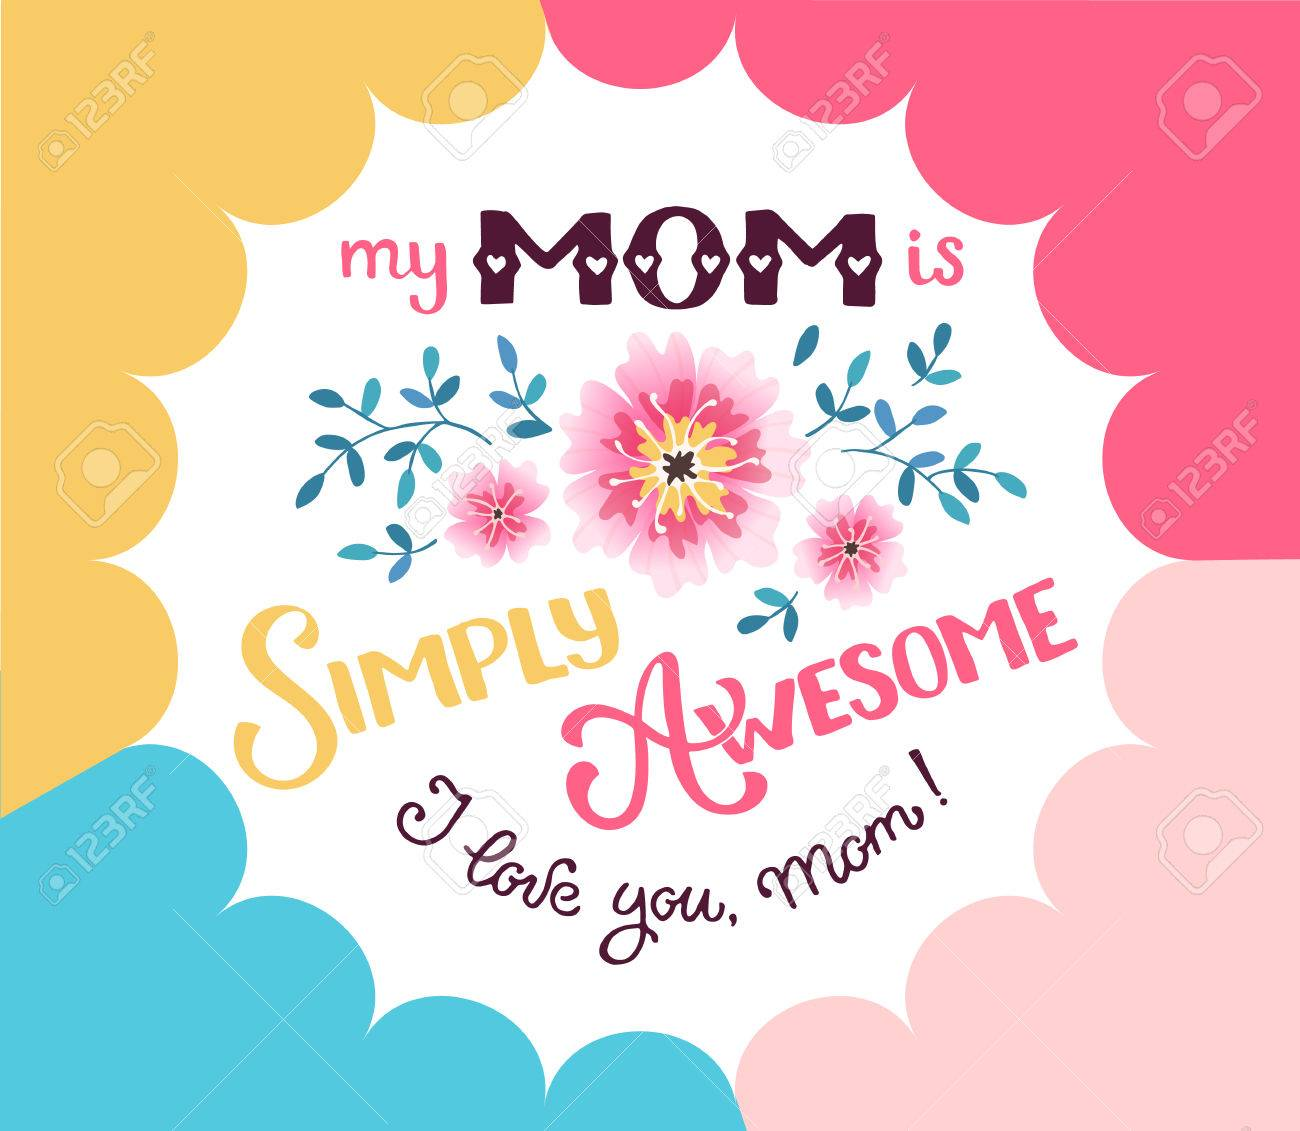 Happy mother day greeting card concept my mom is simply awesome happy mother day greeting card concept my mom is simply awesome i love you m4hsunfo